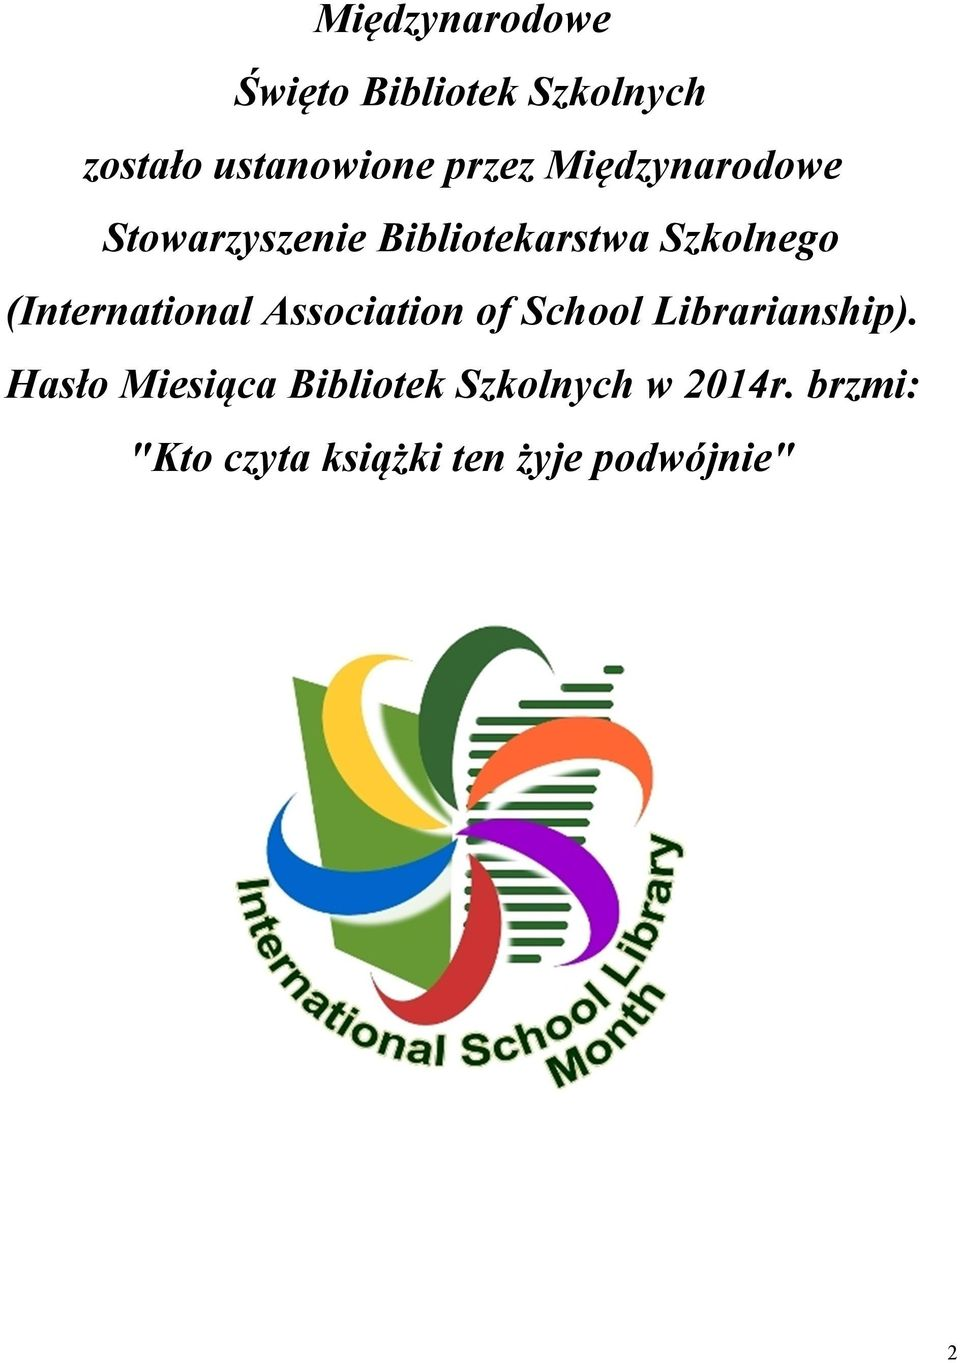 (International Association of School Librarianship).